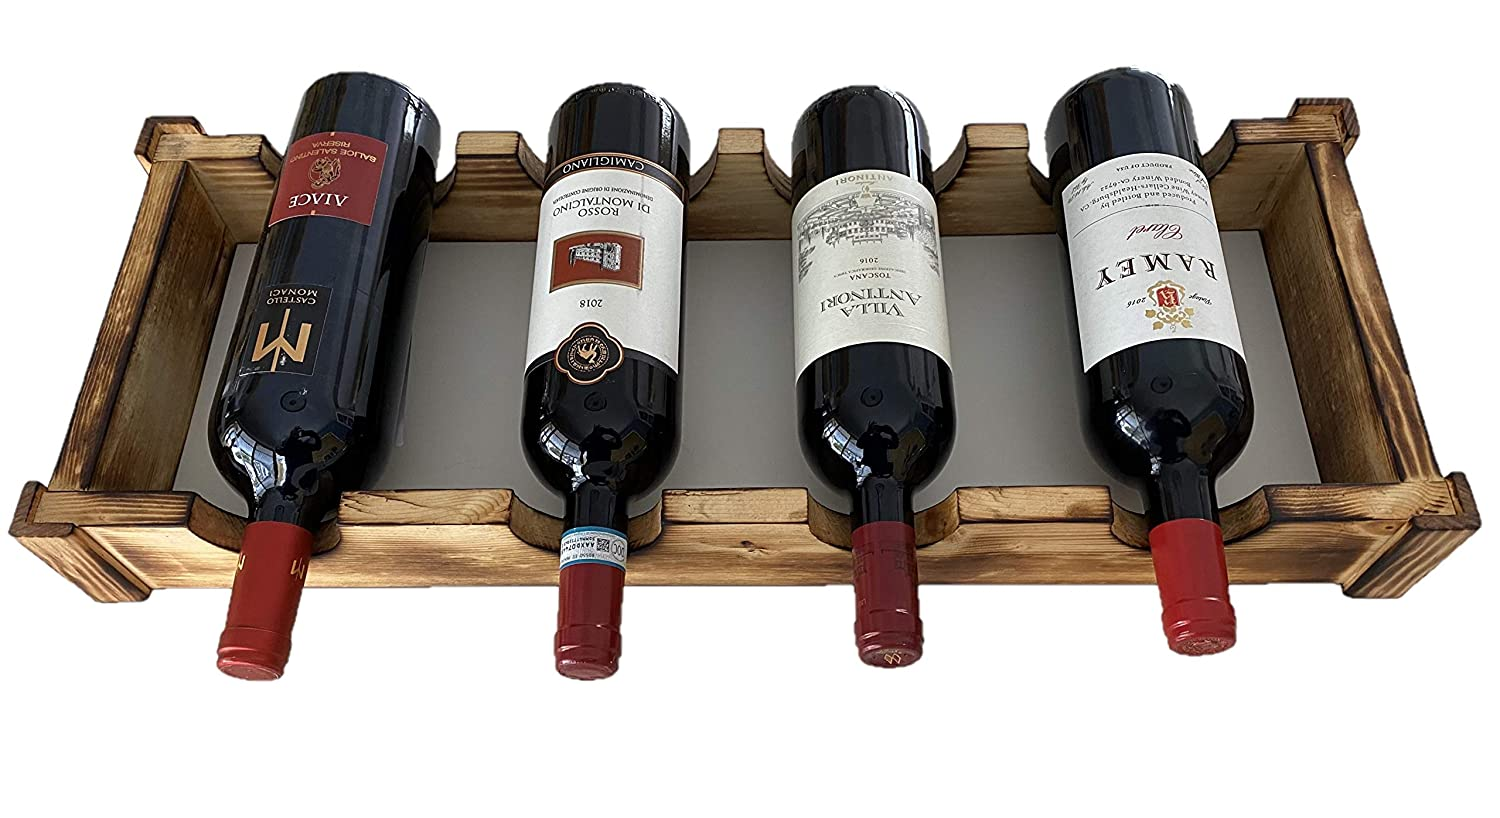 Rare Wine Rack Limited time trial price Countertop Stand Display